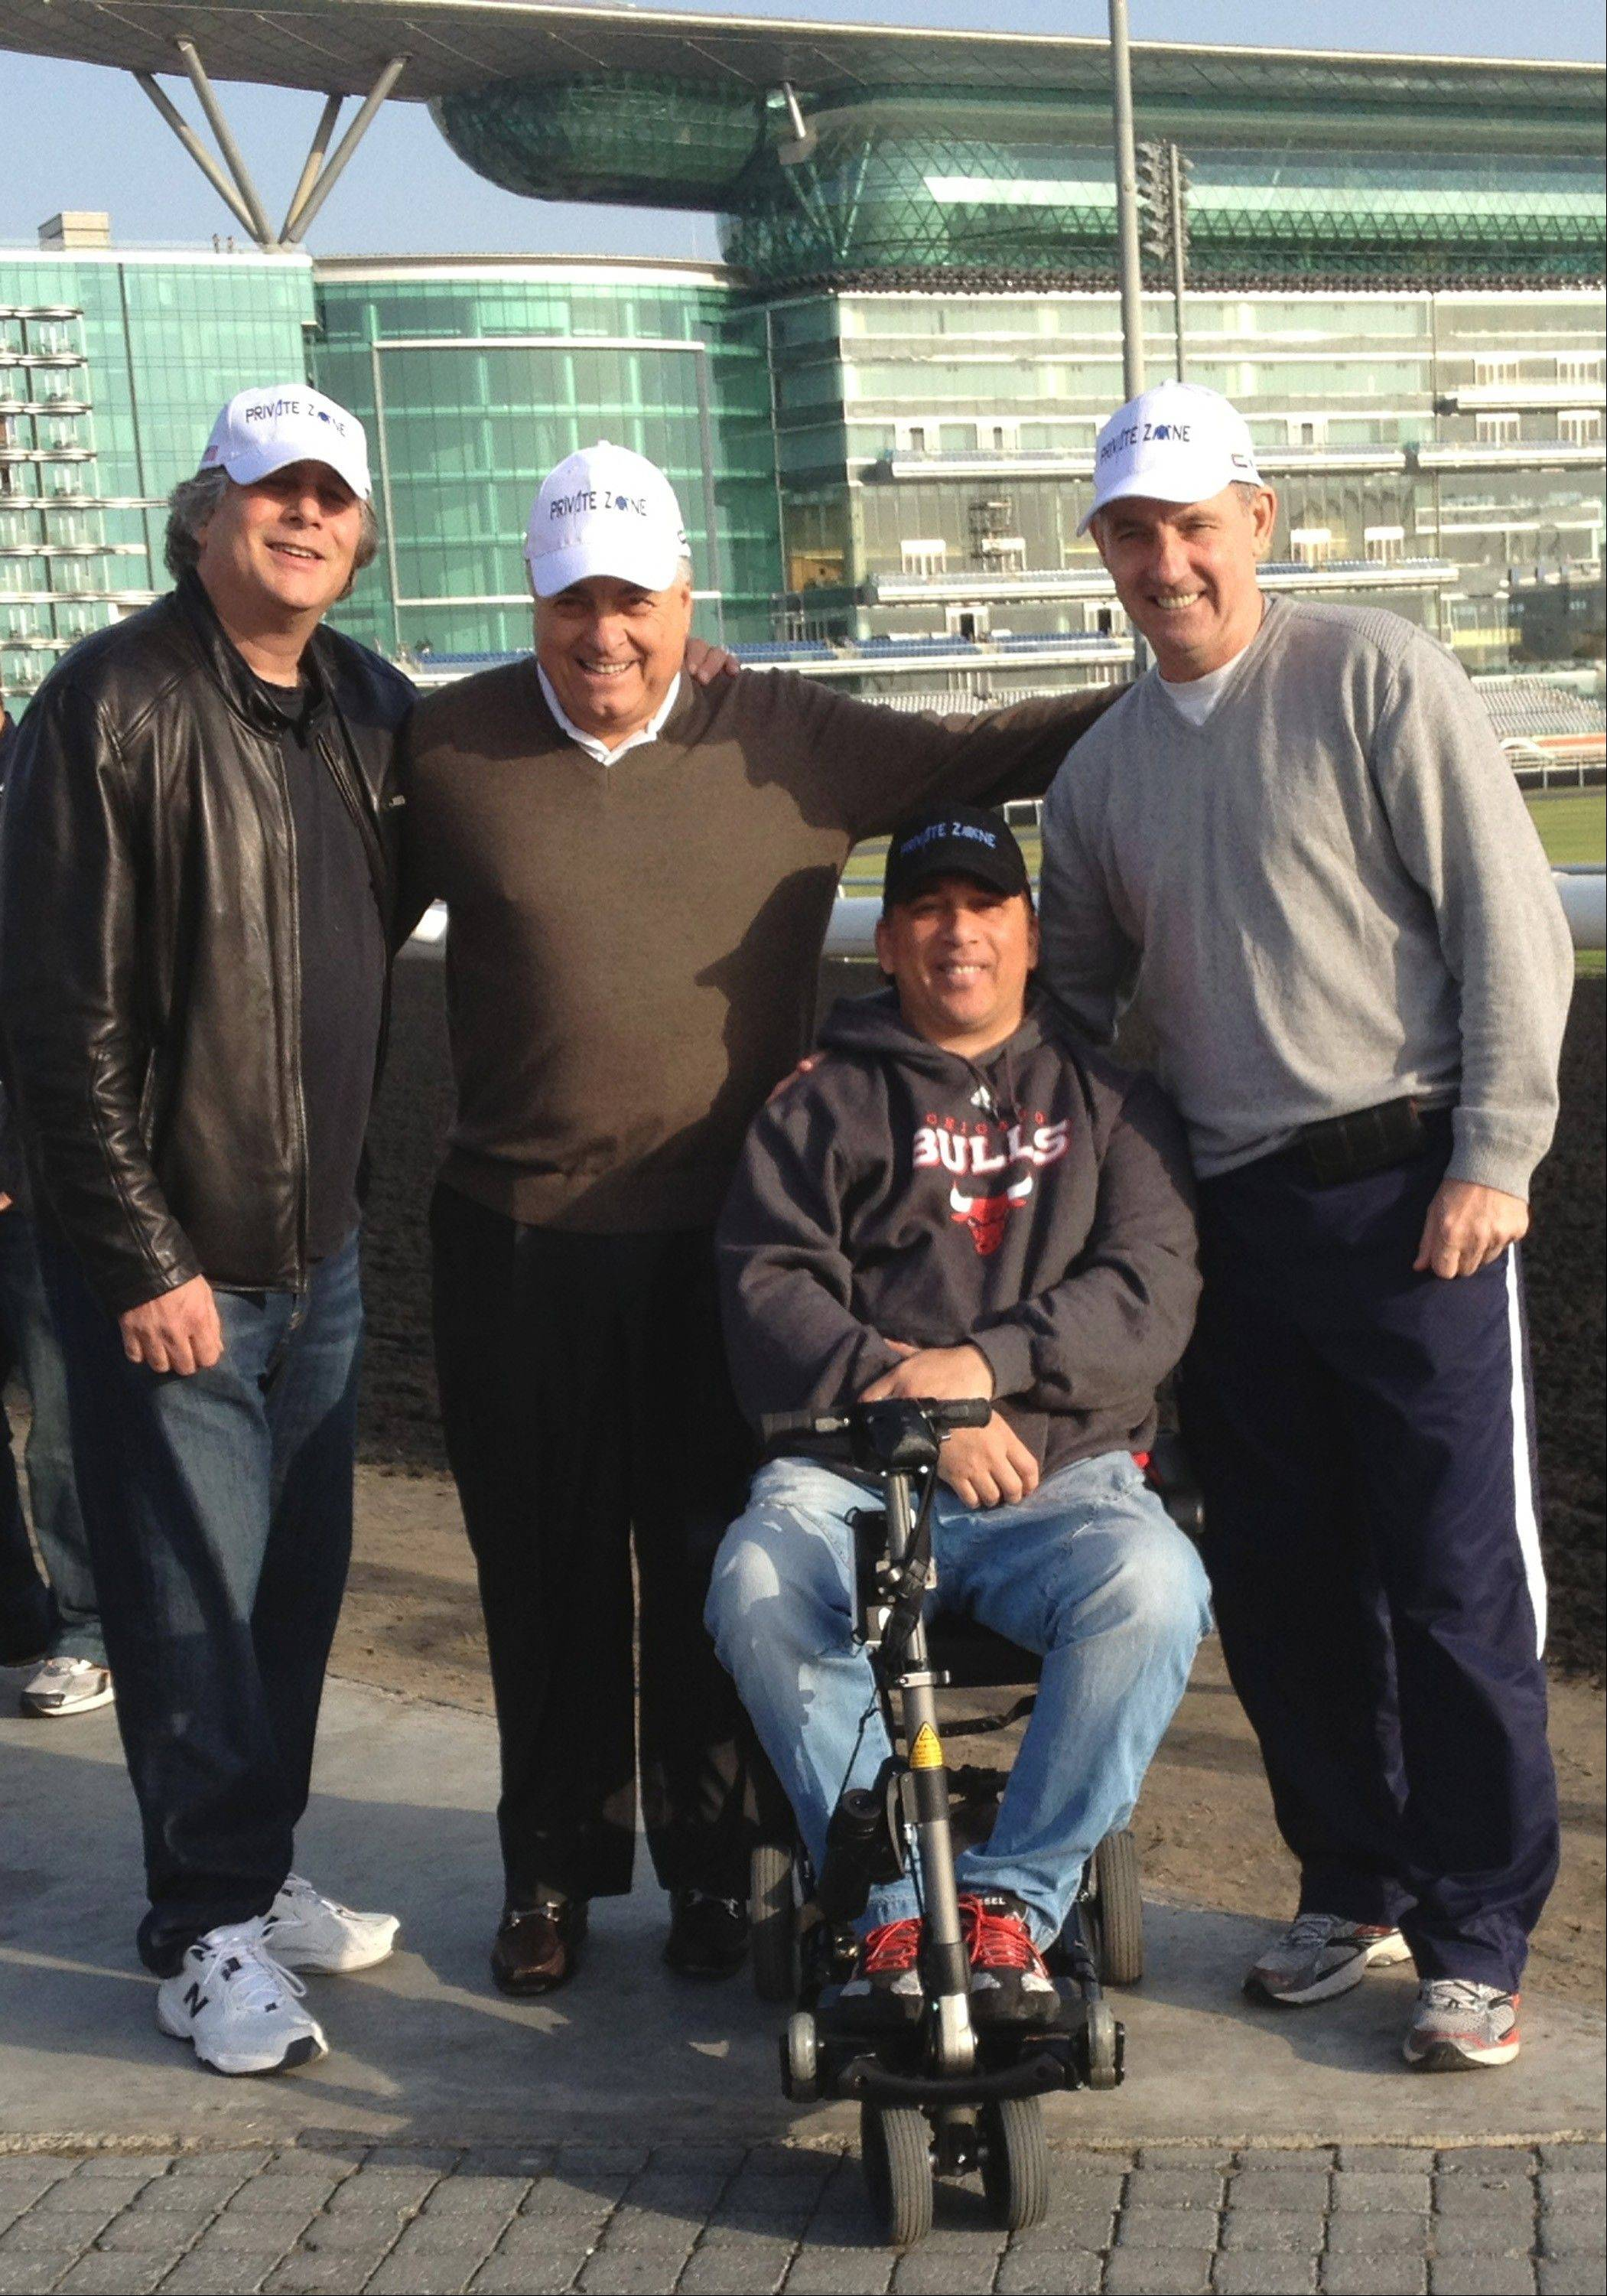 Four members of Good Friends Stable check out the Meydan Racecourse in Dubai, where they'll watch their horse, Private Zone, in a $2 million race. Left to right: Hilton Gordon, Joe Casciato, former jockey Rene Douglas and former Blackhawks star Denis Savard.